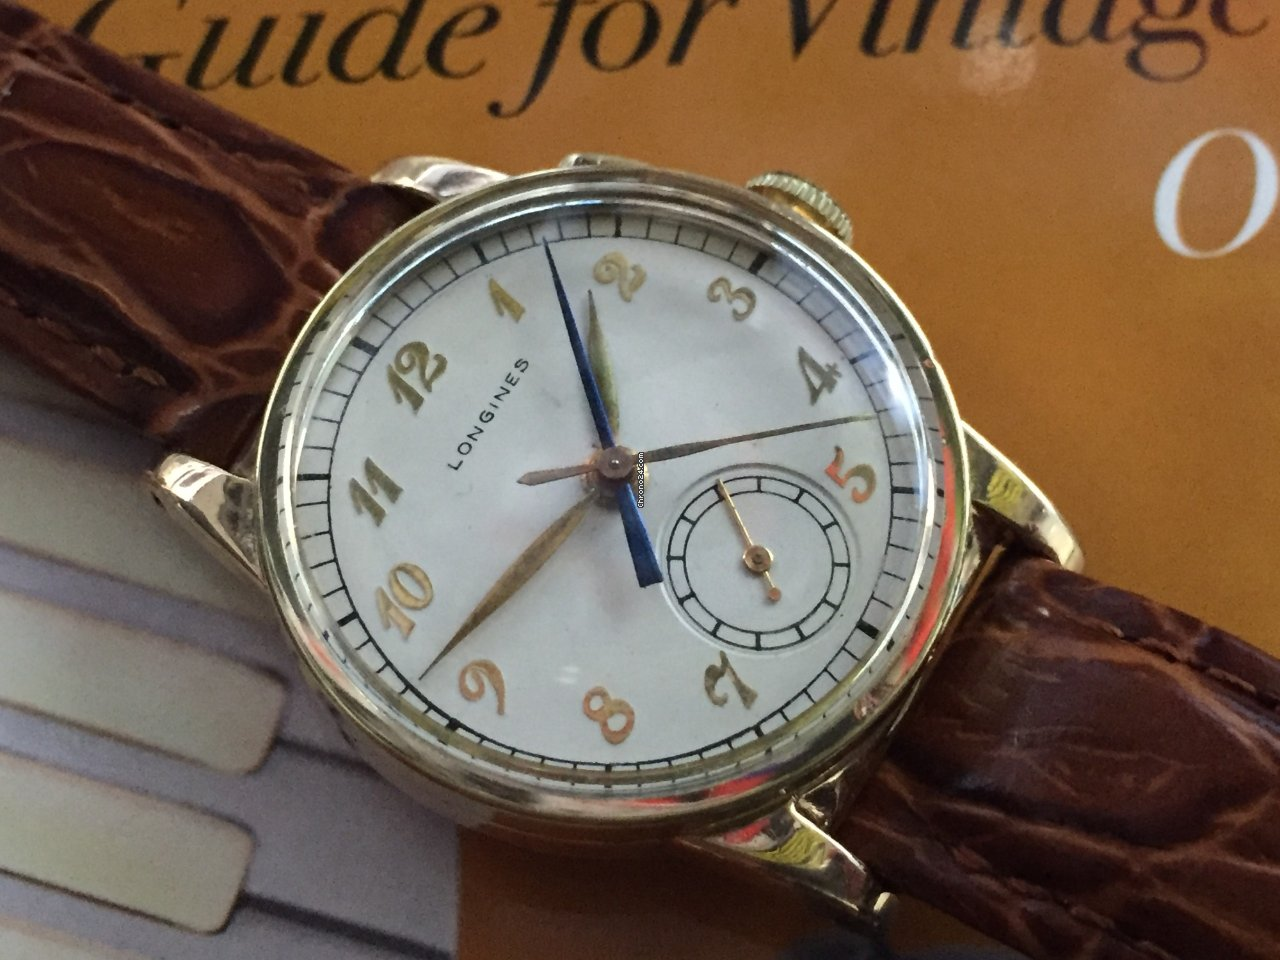 ebb7b04d4 Longines watches - all prices for Longines watches on Chrono24